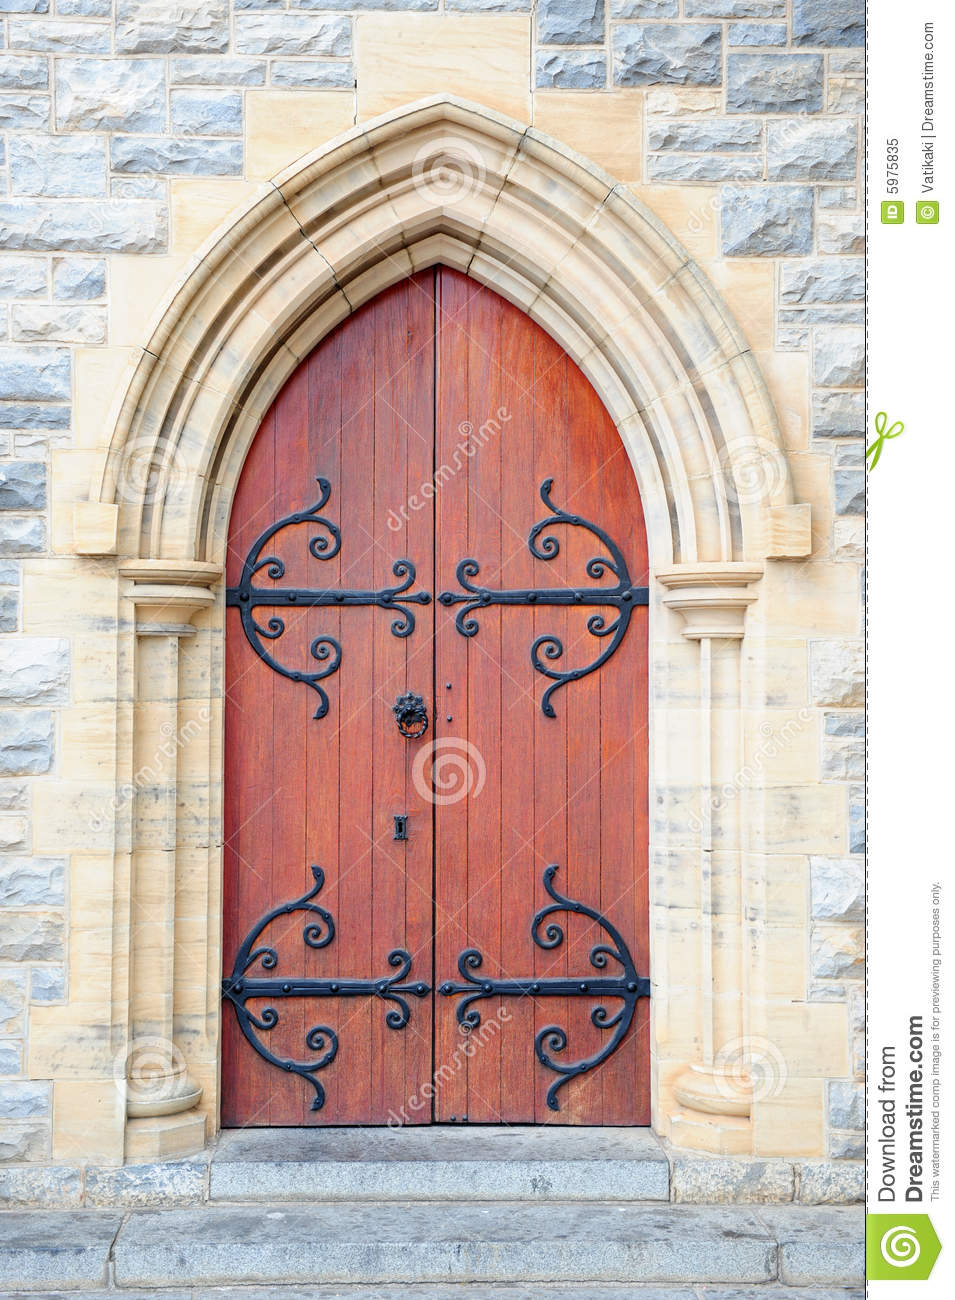 Open church door clipart - Antique Arch Building Church Decoration Door